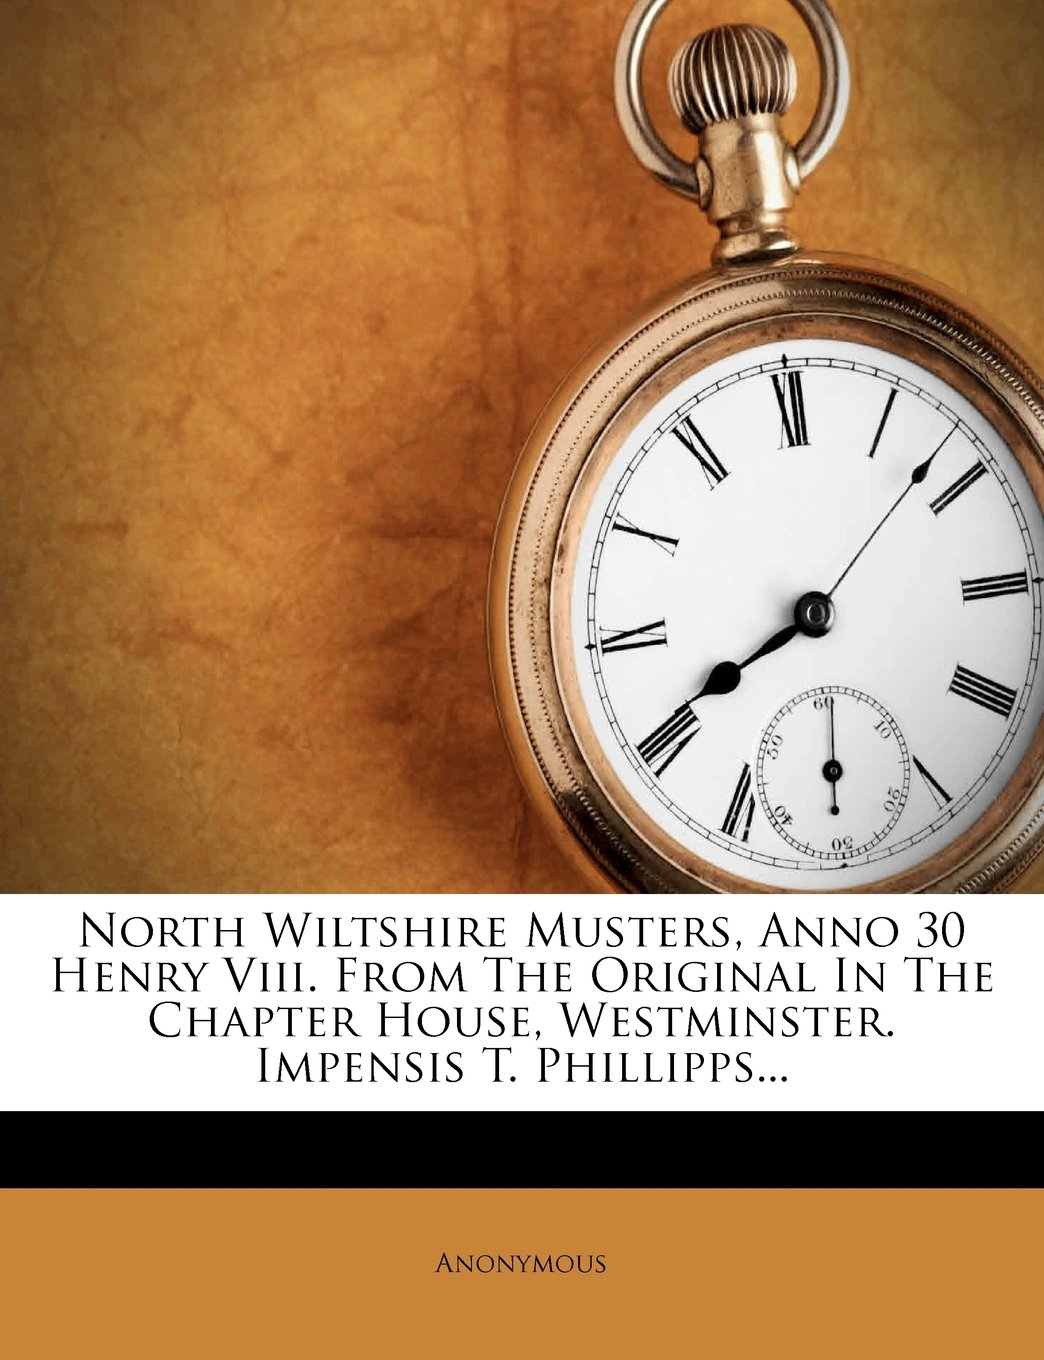 North Wiltshire Musters, Anno 30 Henry VIII. from the Original in the Chapter House, Westminster. Impensis T. Phillipps... pdf